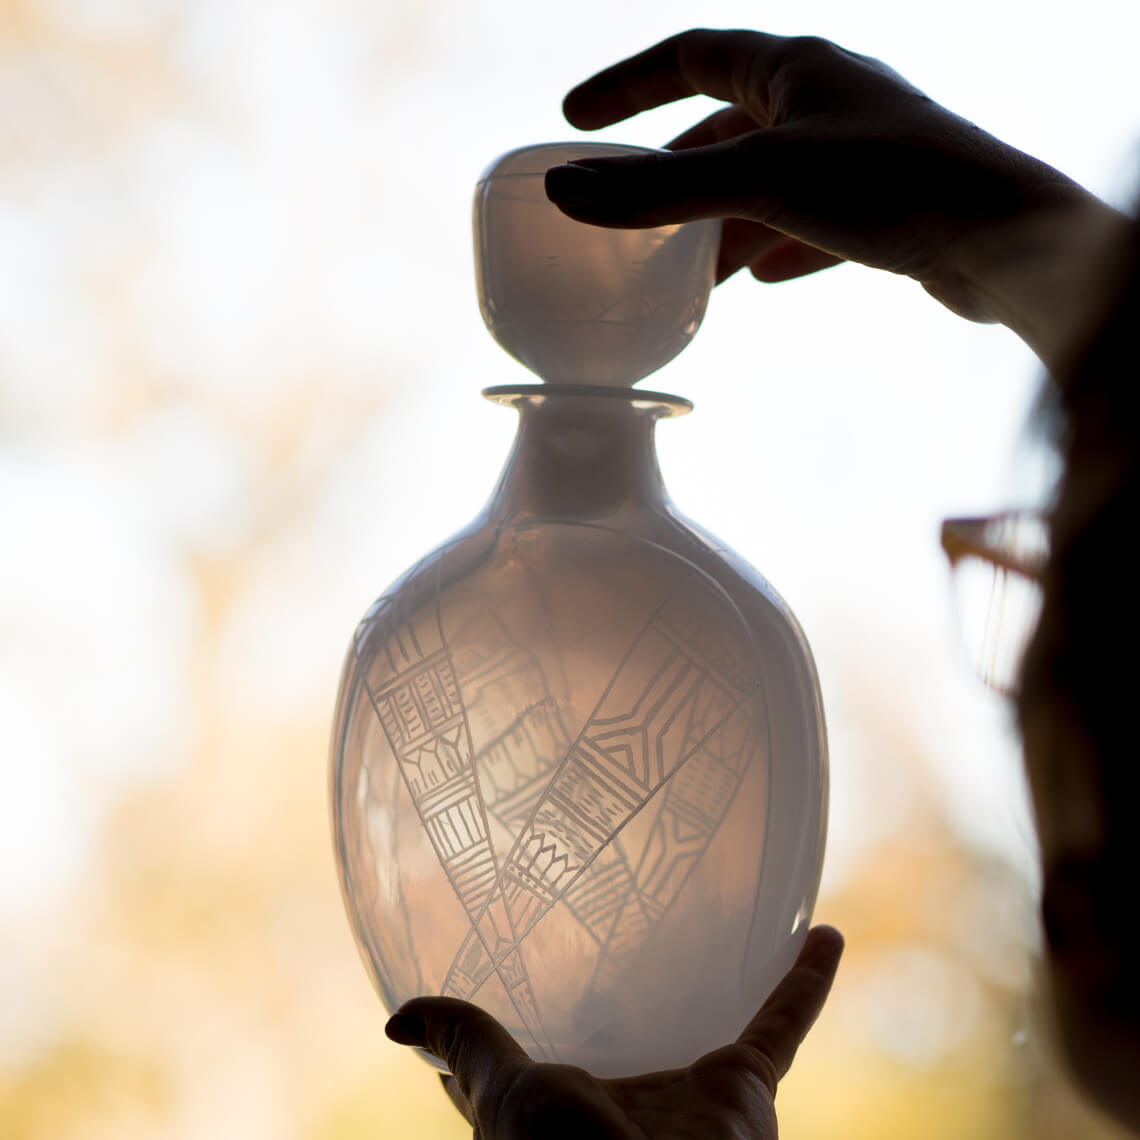 Translucent white decanter being held up to the light. Geometric patterns are engraved on its surface